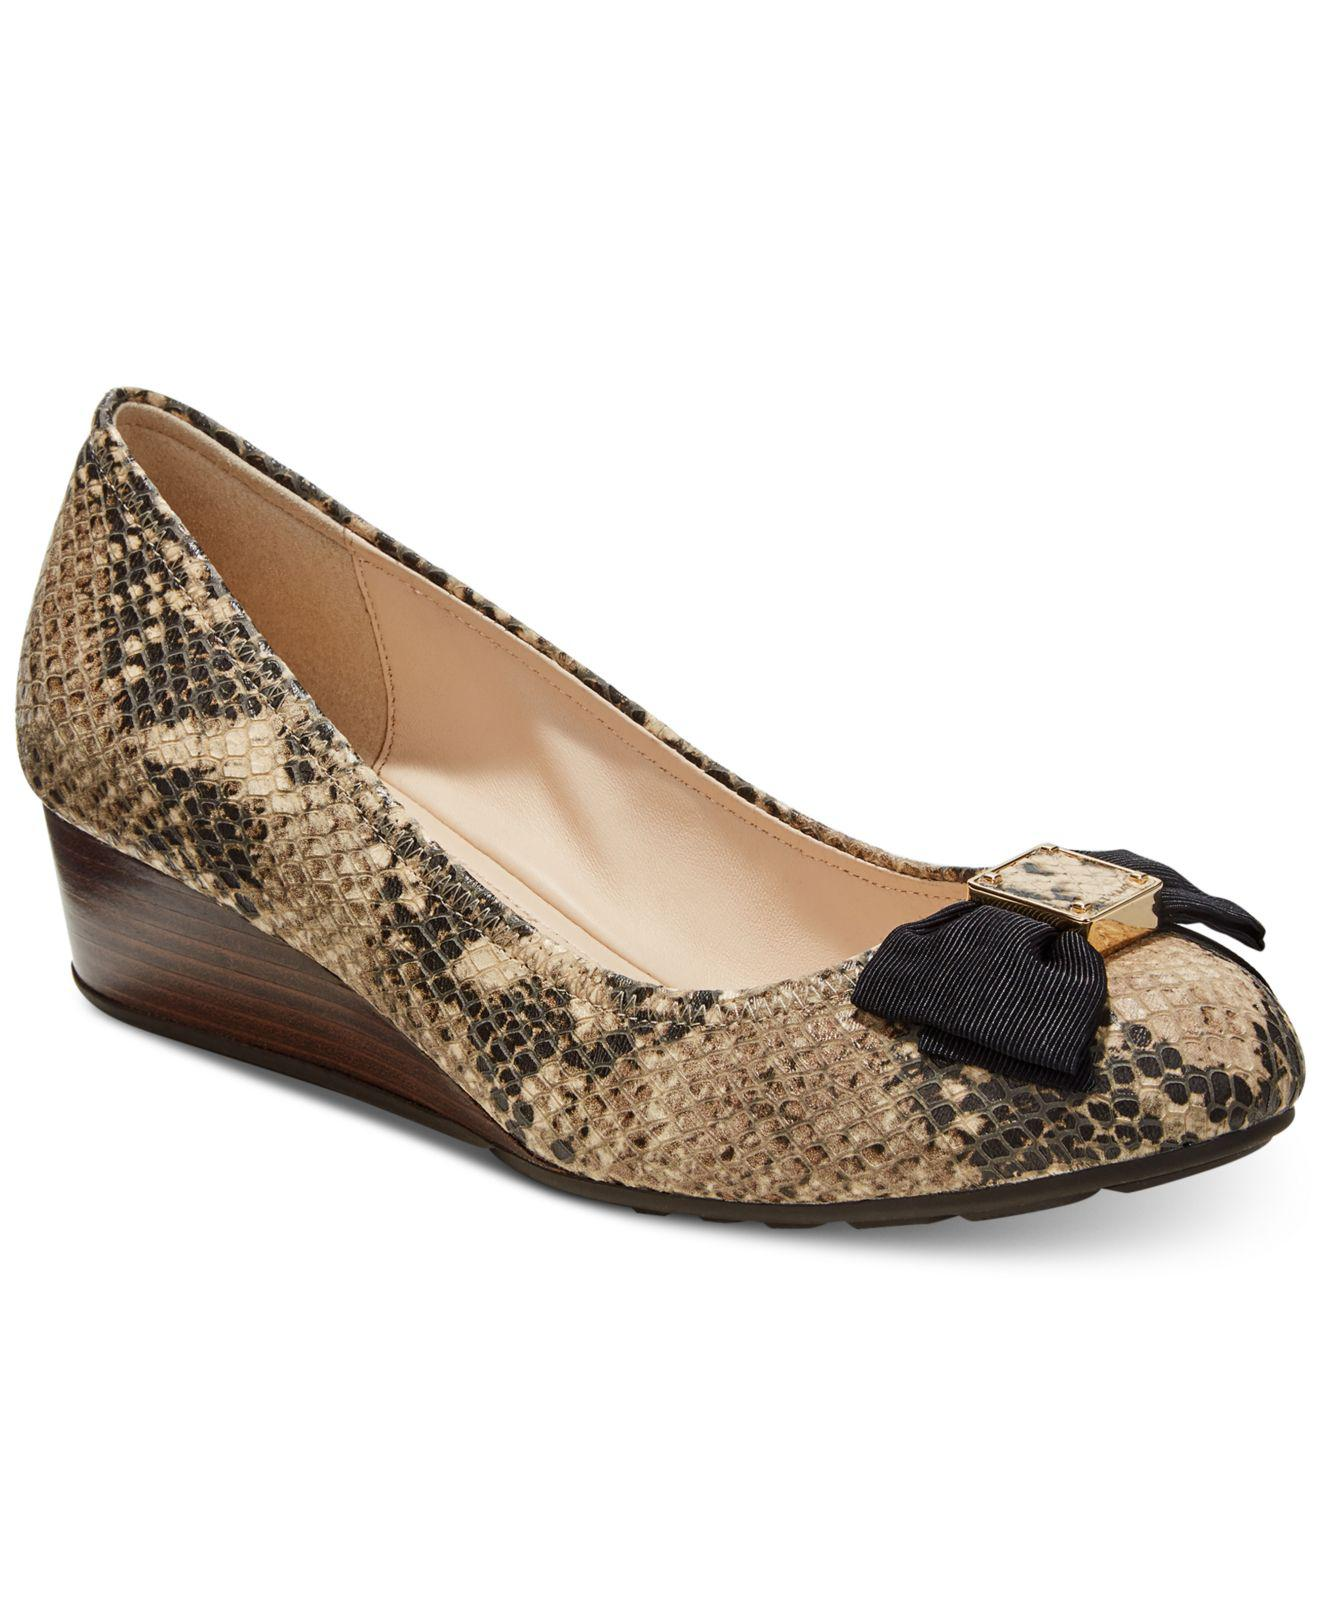 3407f173fc4c Lyst - Cole Haan Tali Grand Bow Wedge Pumps in Natural